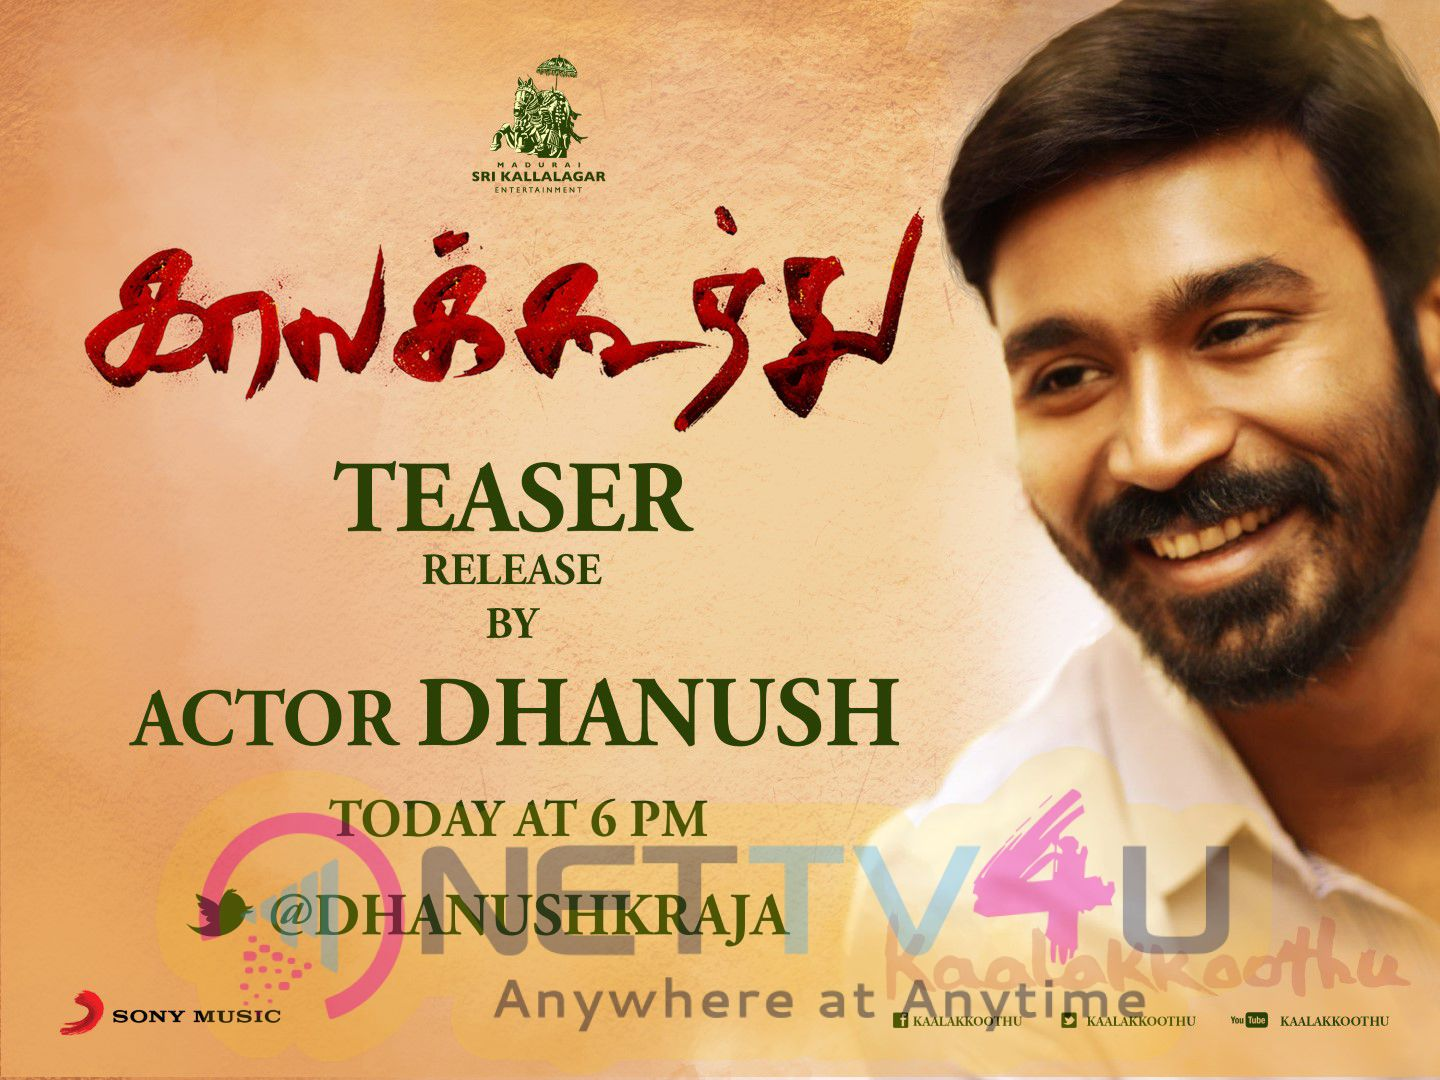 KaalaKoothu Teaser To Be Released By Actor Dhanush By 6PM Today Poster